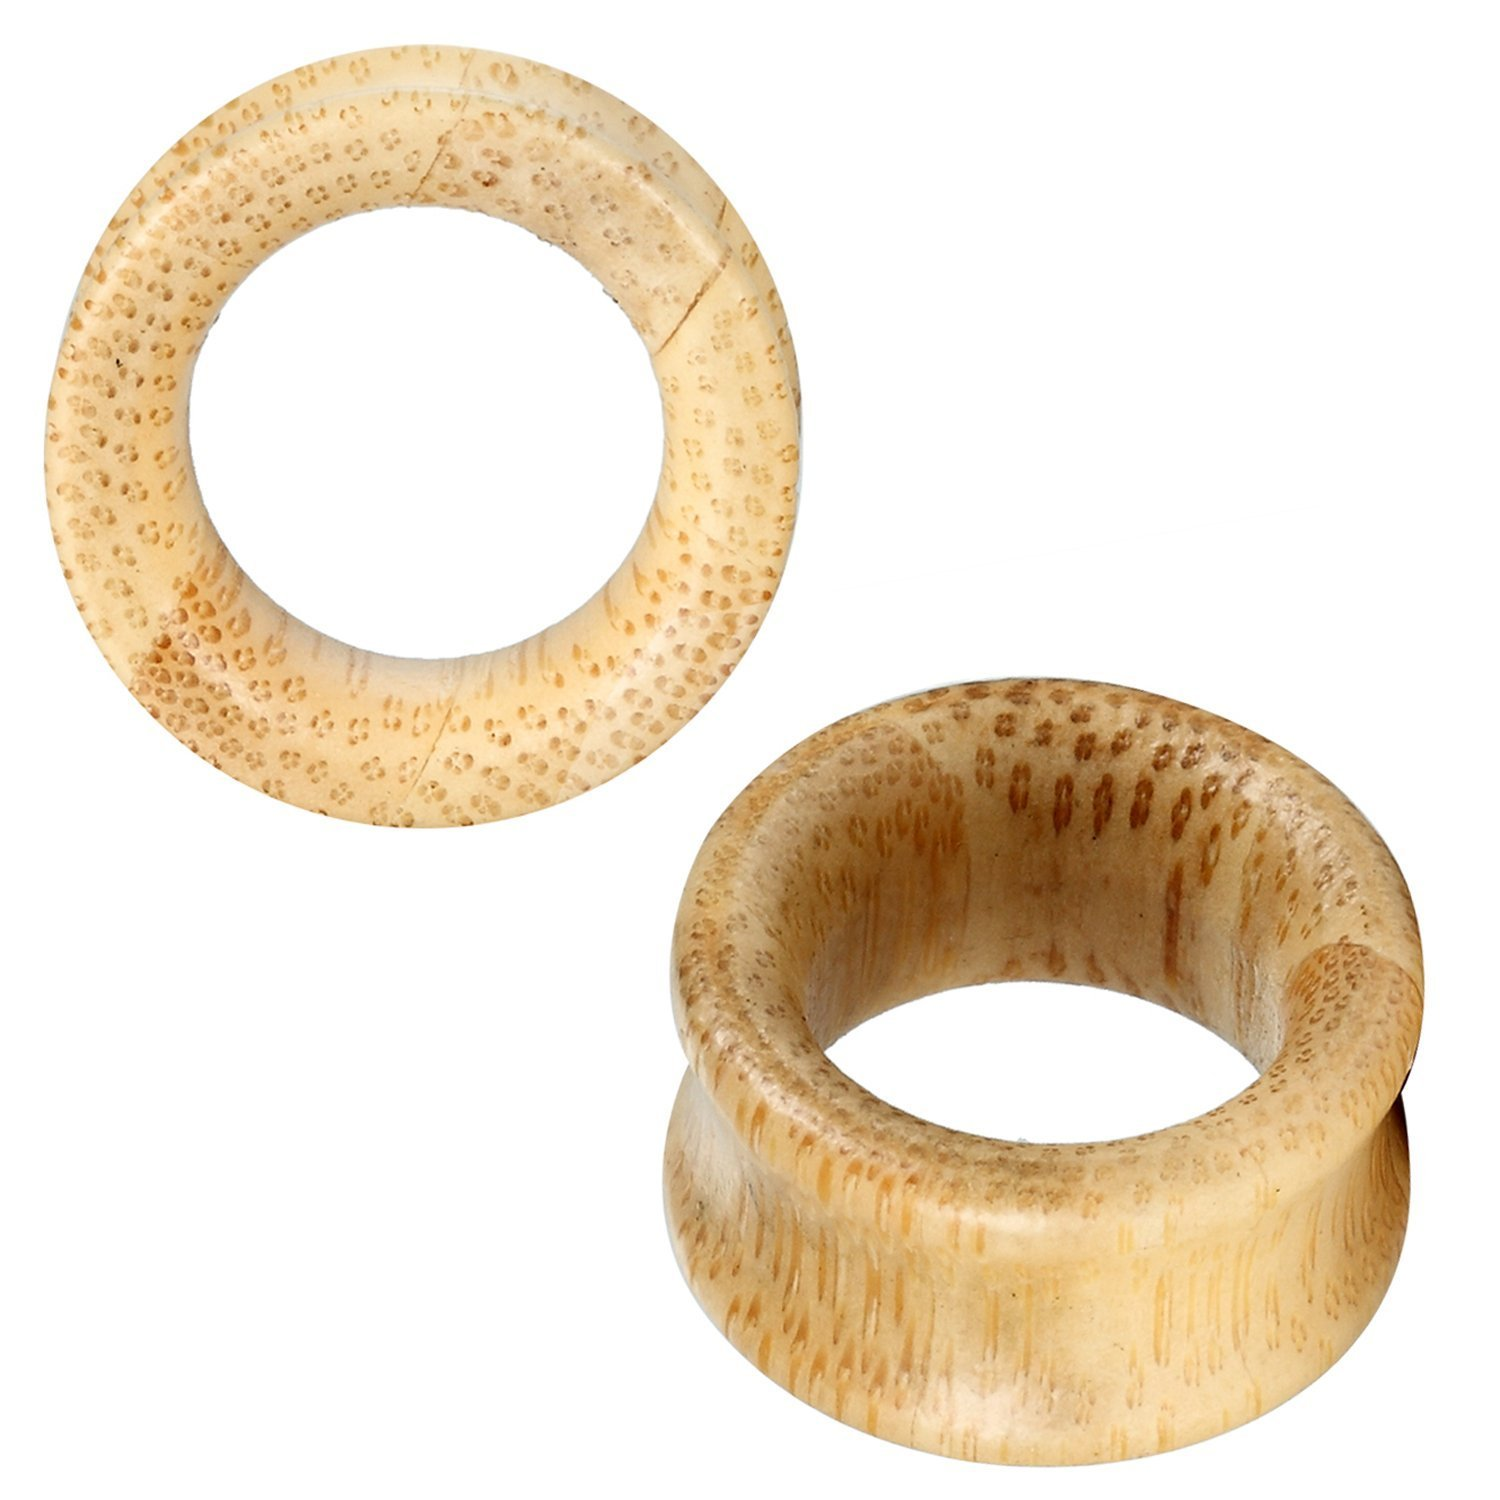 BodyJ4You Organic Maple Wood Tunnels 00G-20mm (2 Pieces)